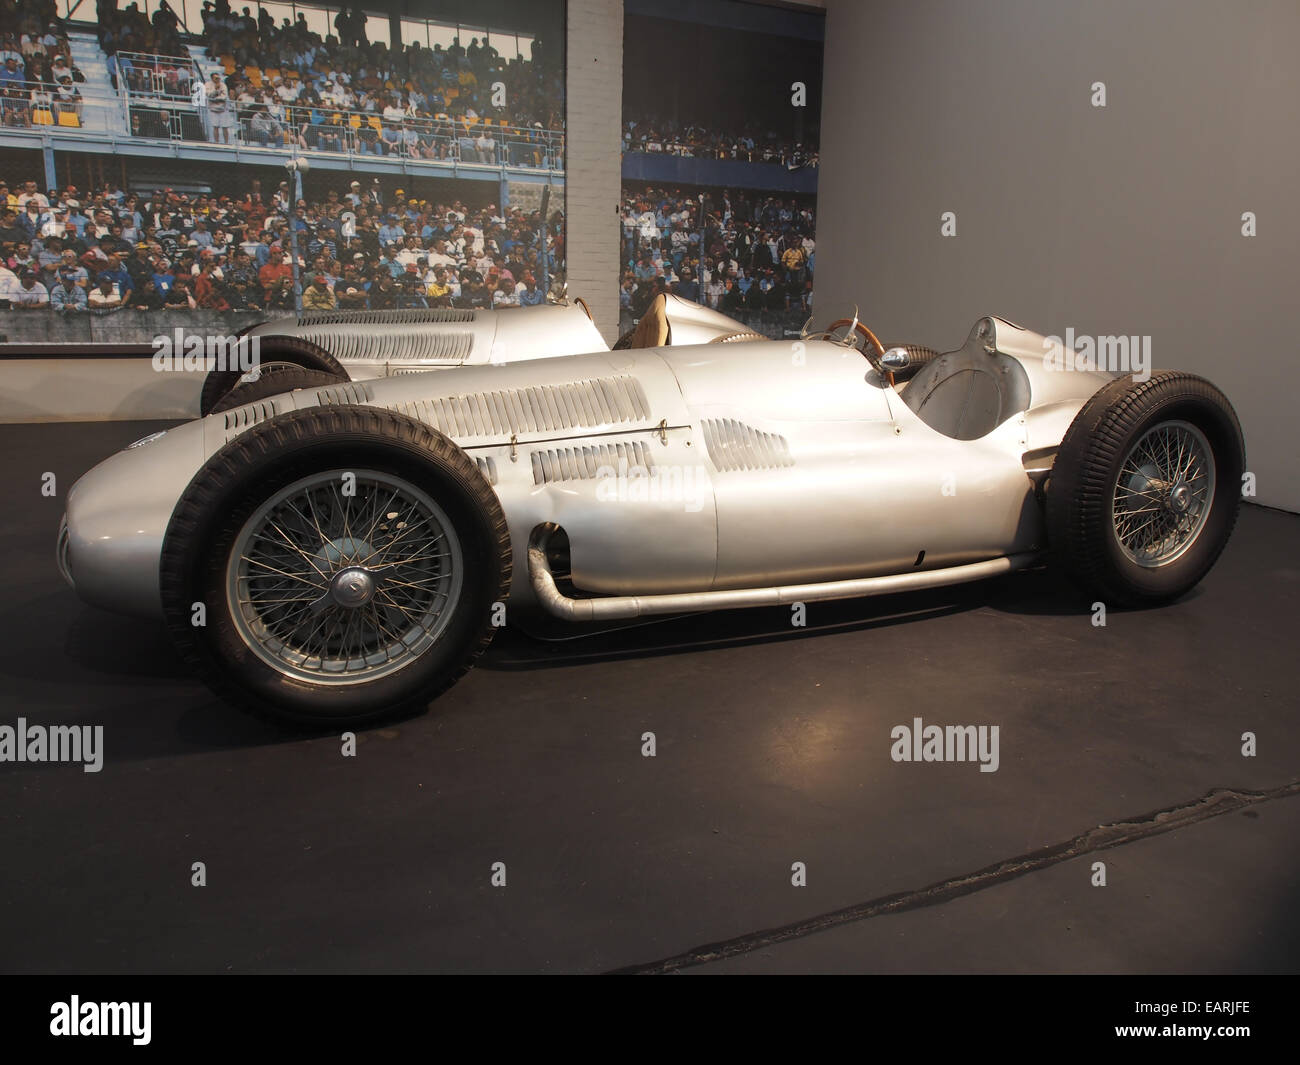 1939 Mercedes-Benz W154 Grand Prix, 12 cylinders, 2962cm3, 480hp, 280kmh, photo 2 - Stock Image